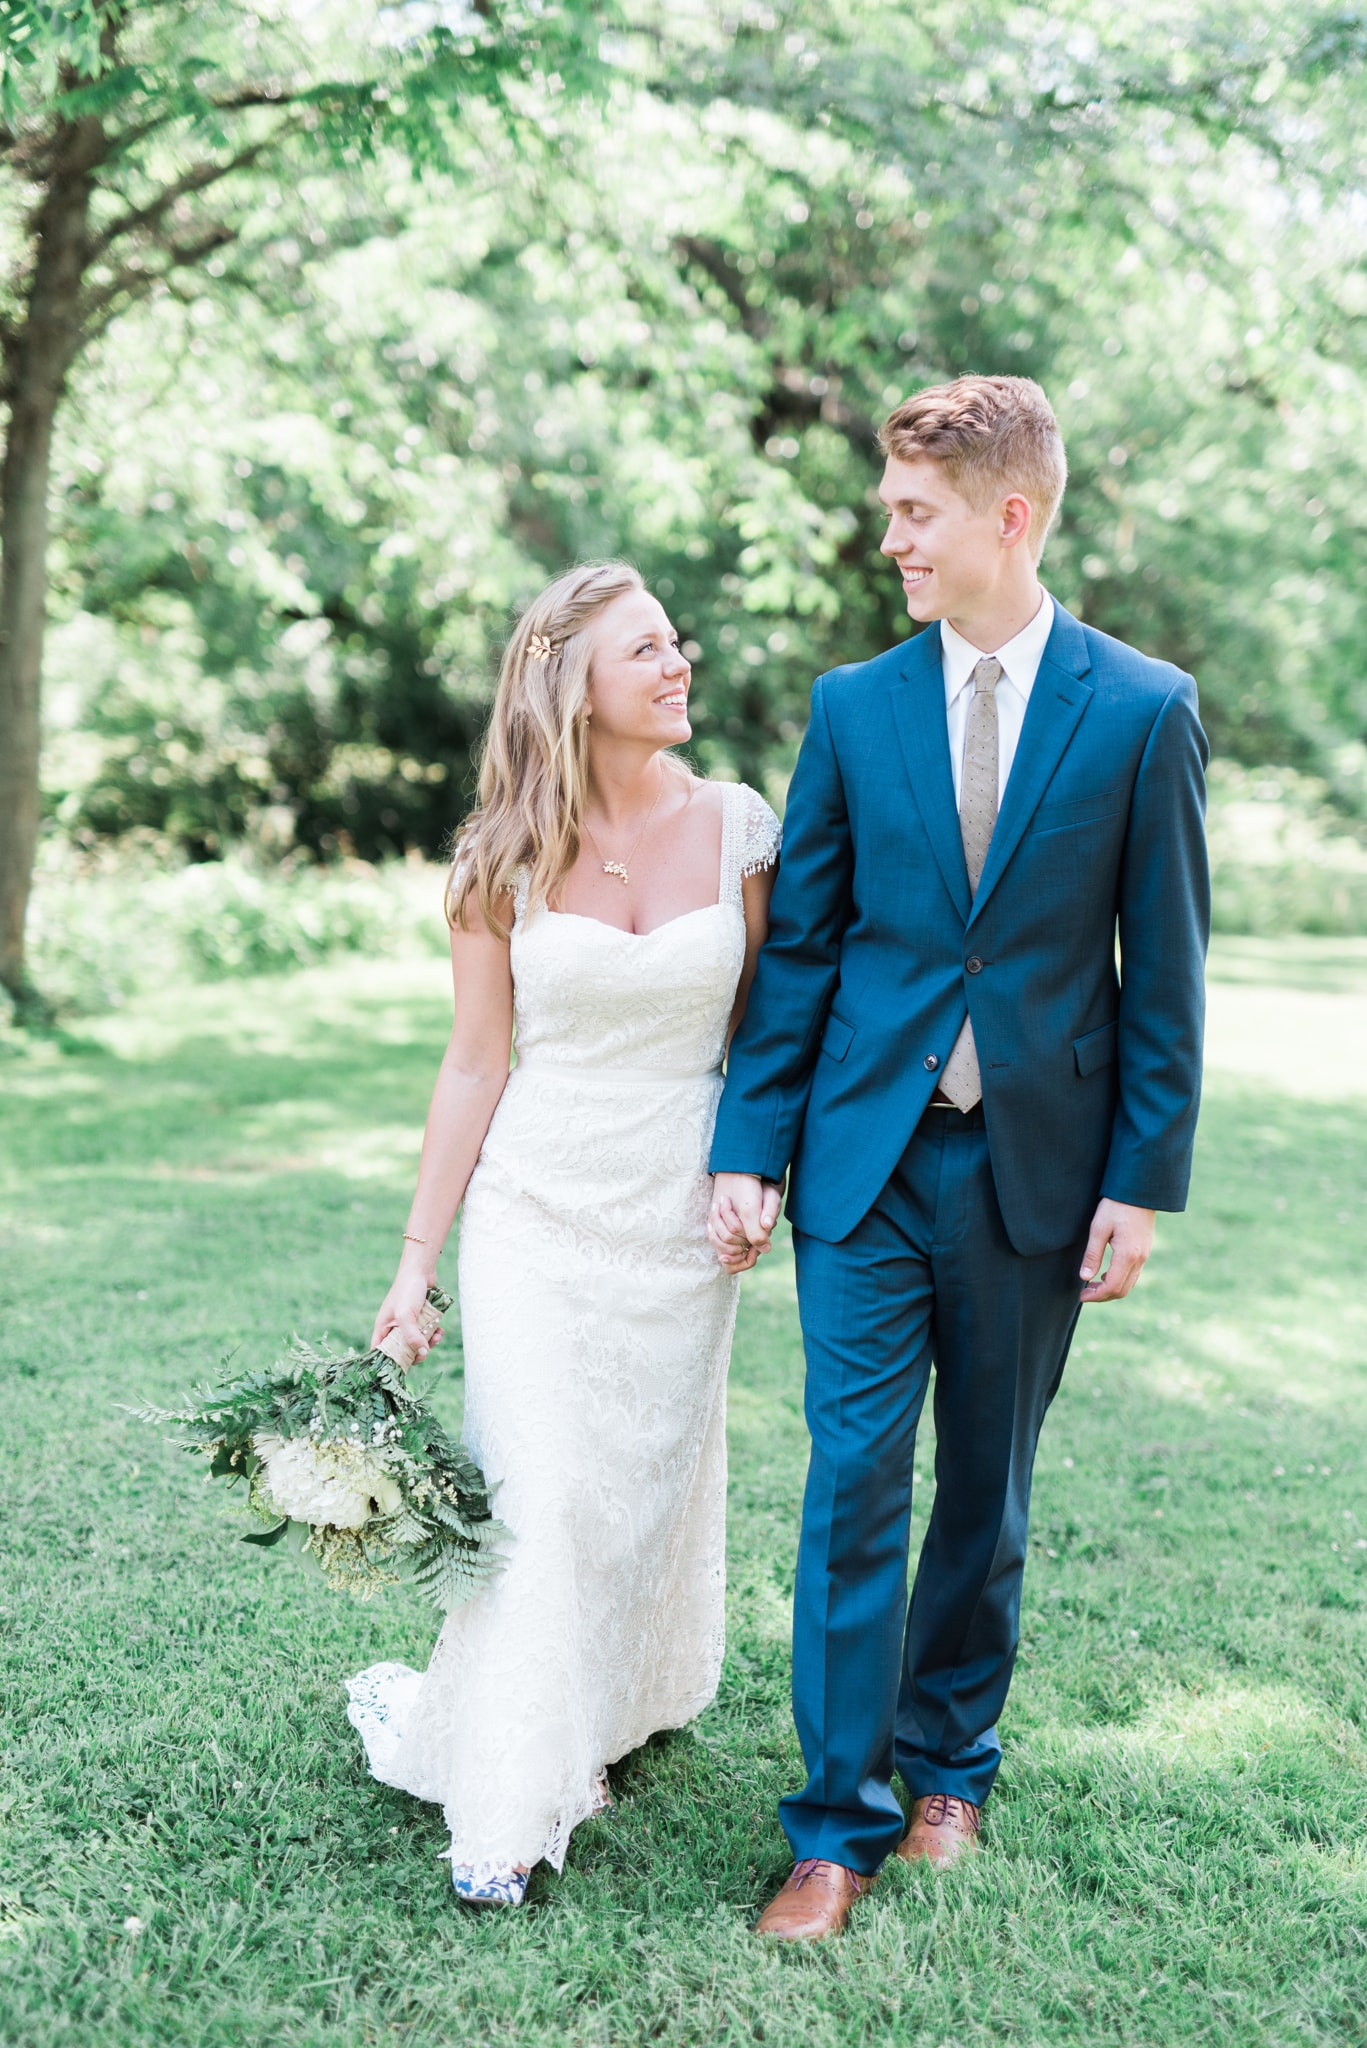 GraceandPeterWedding_0284-min.JPG